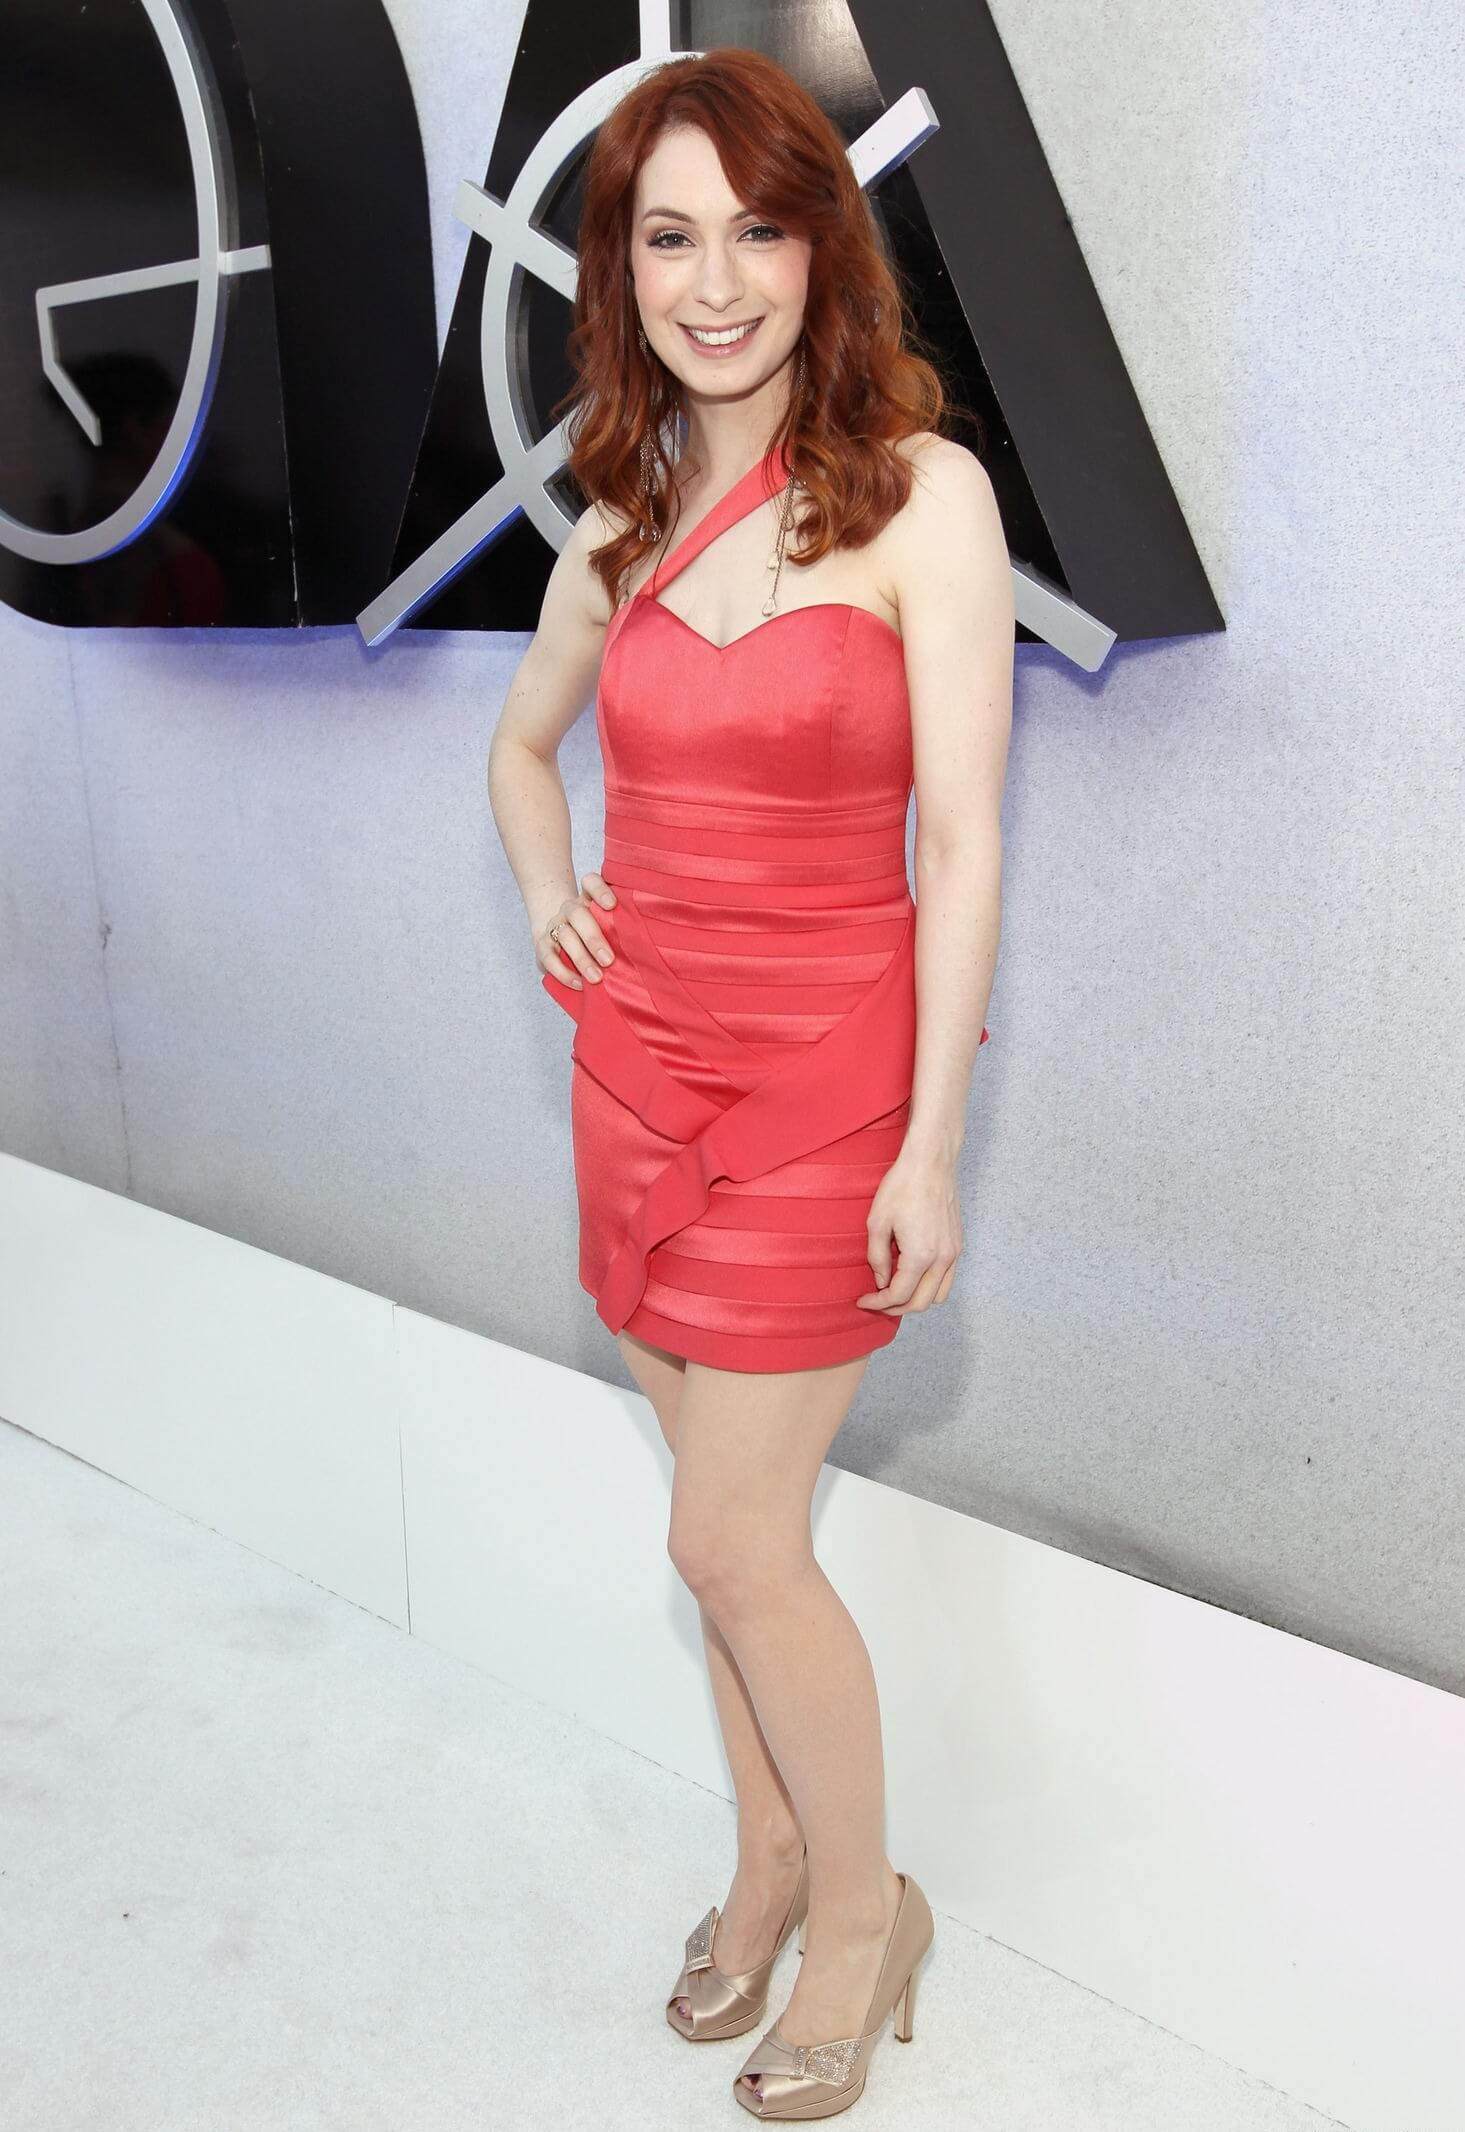 Felicia Day sexy red dress